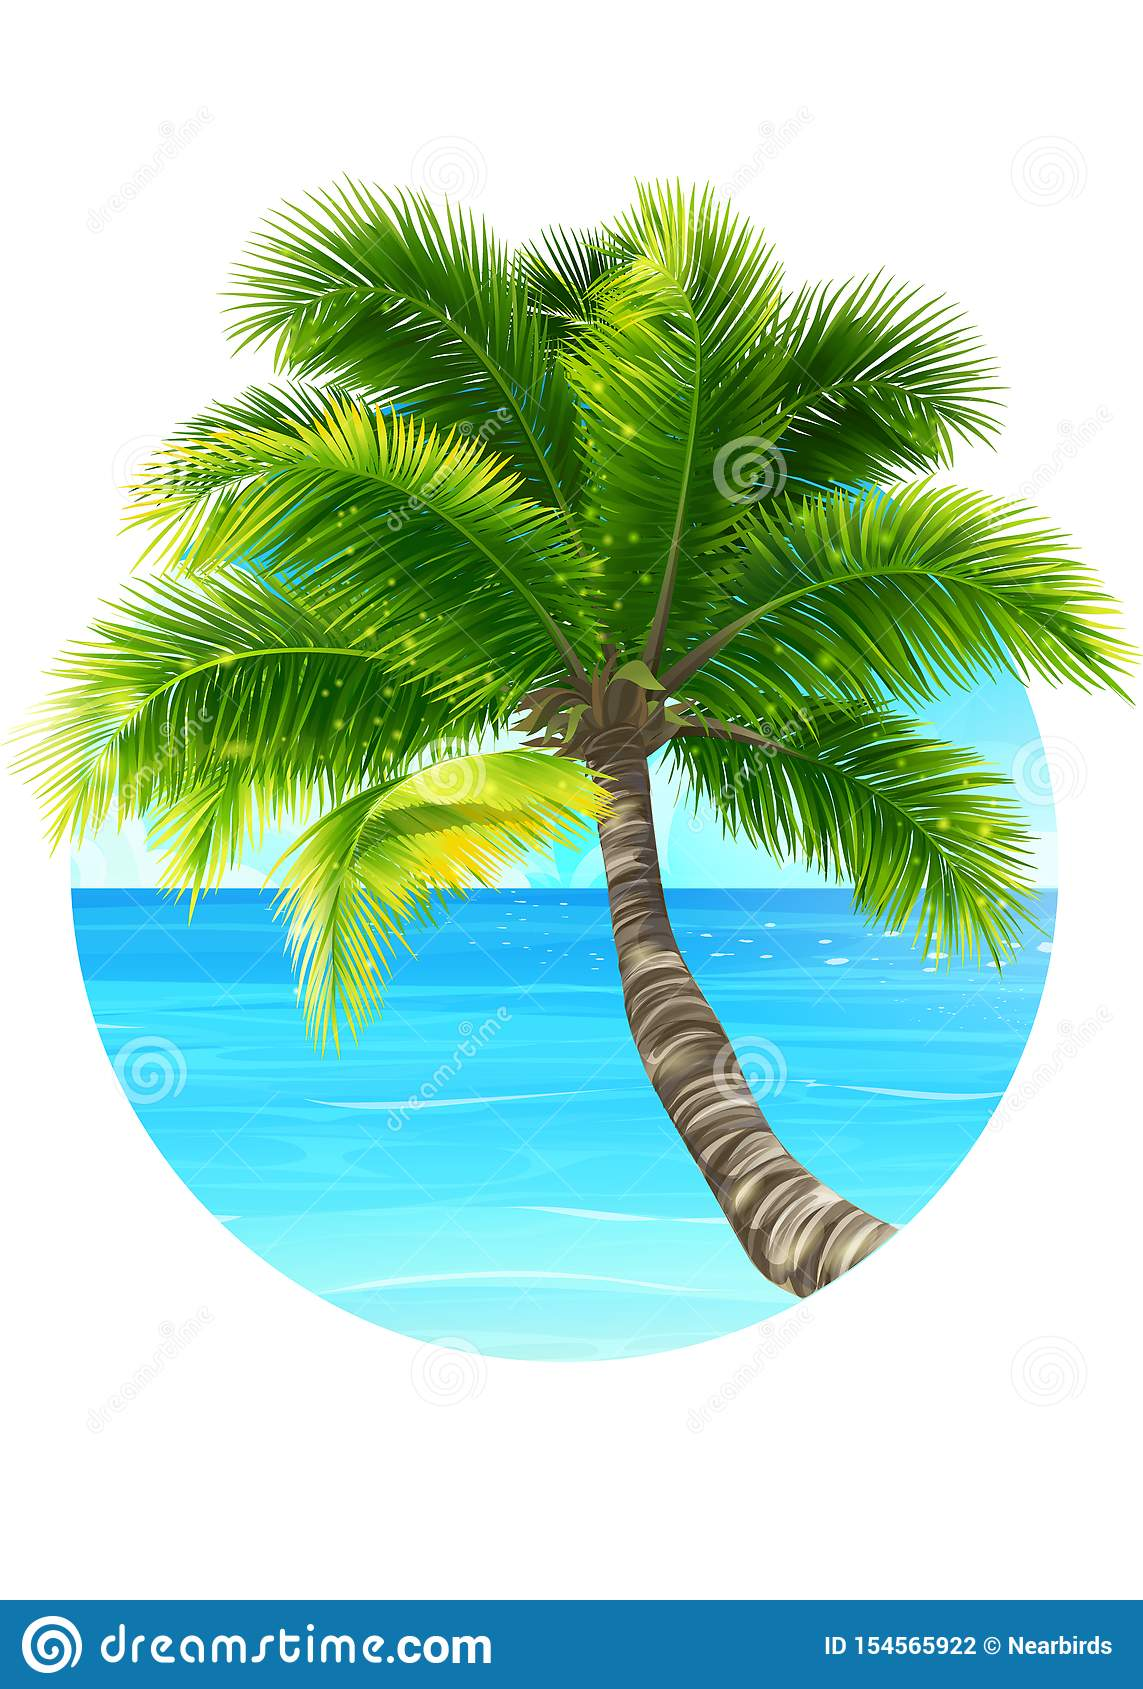 Vector background illustration palm tree and ocean